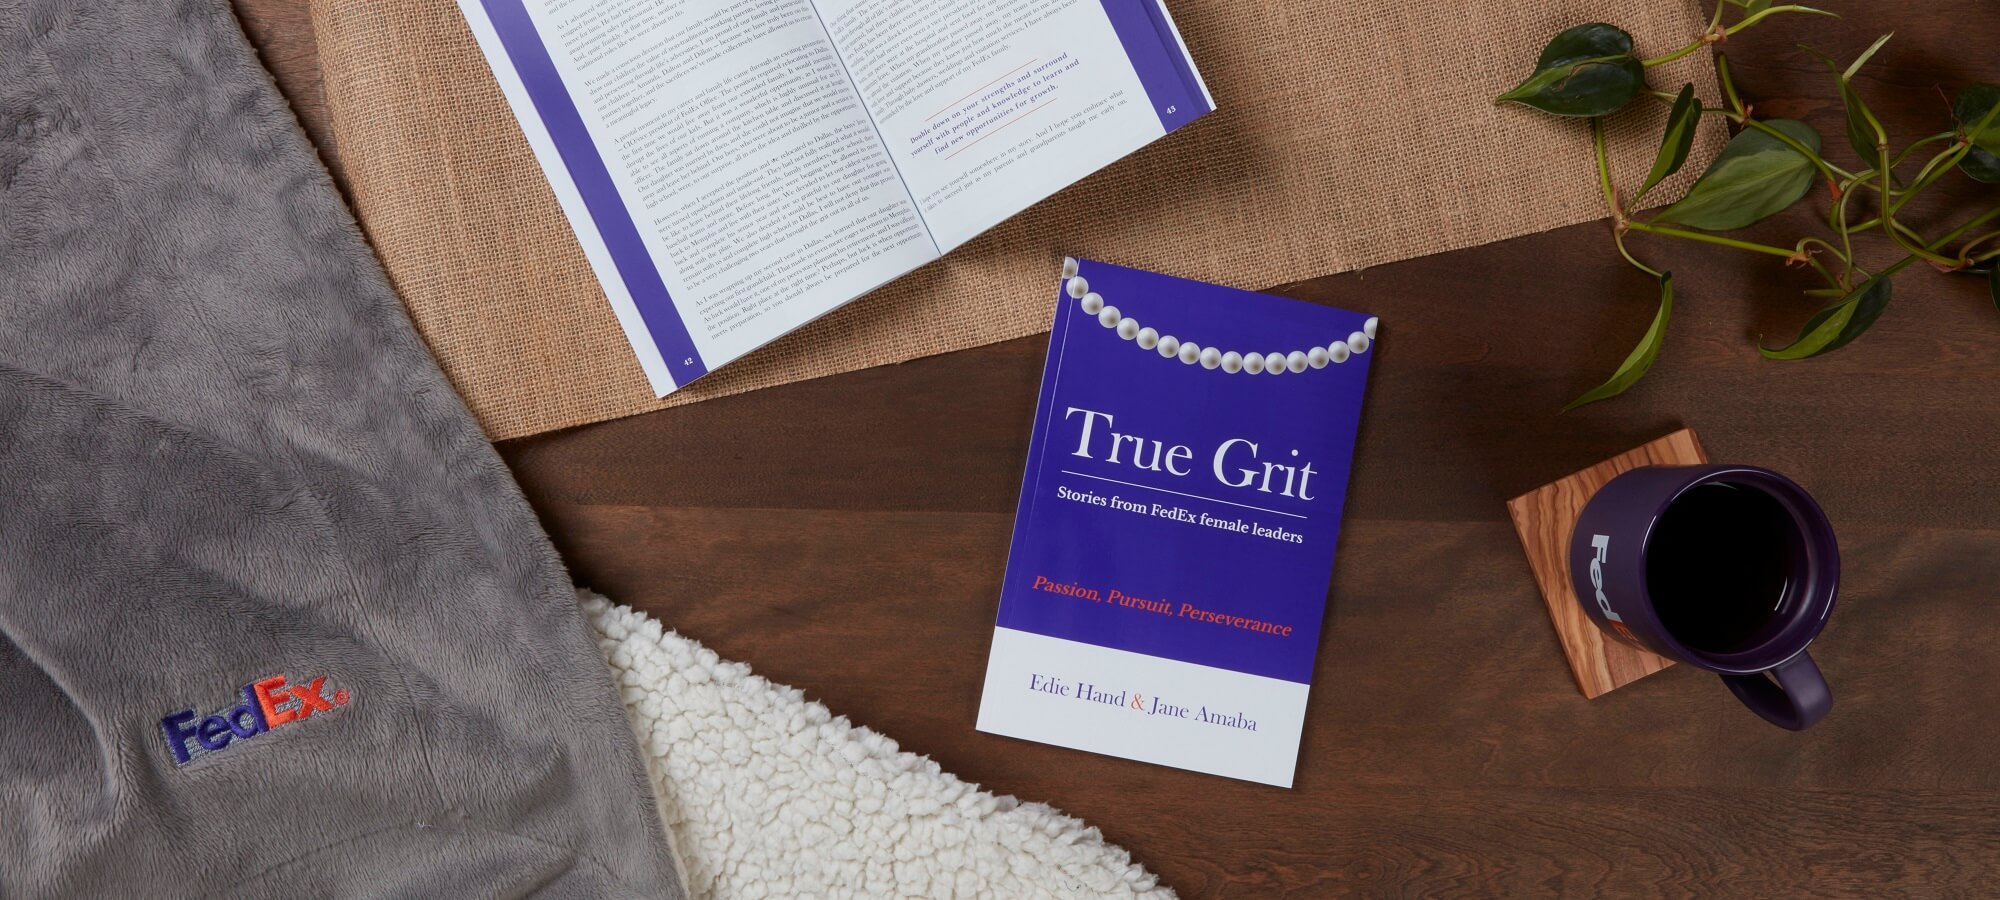 Copy of True Grit book on a table